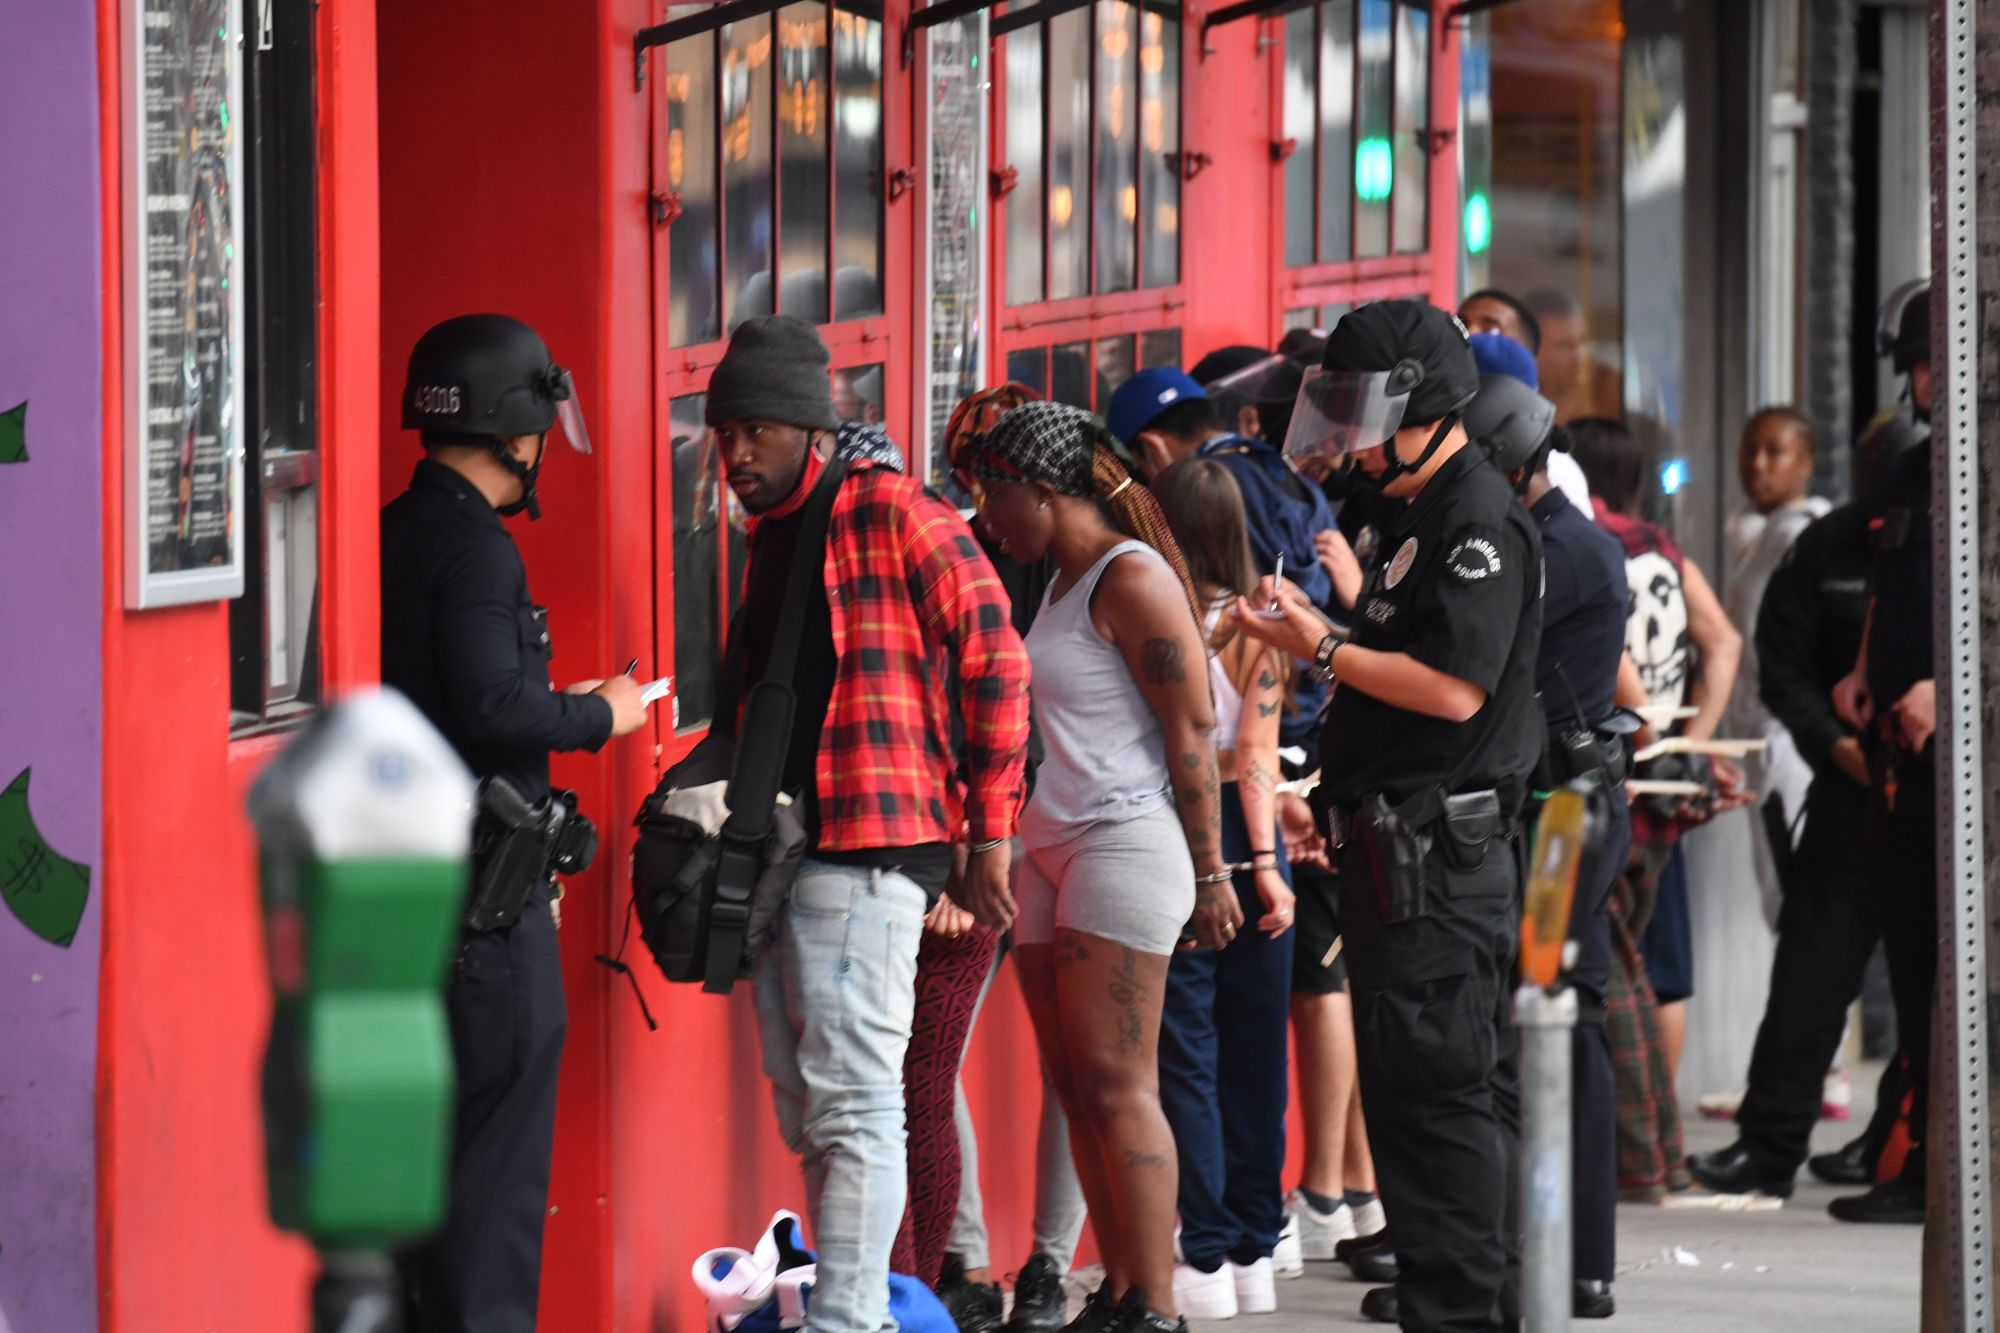 People are arrested in Hollywood on June 1, 2020, as a third night of curfews followed days of massive, mostly peaceful protests to decry George Floyd's death in Minneapolis. (Robyn Beck / AFP via Getty Images)